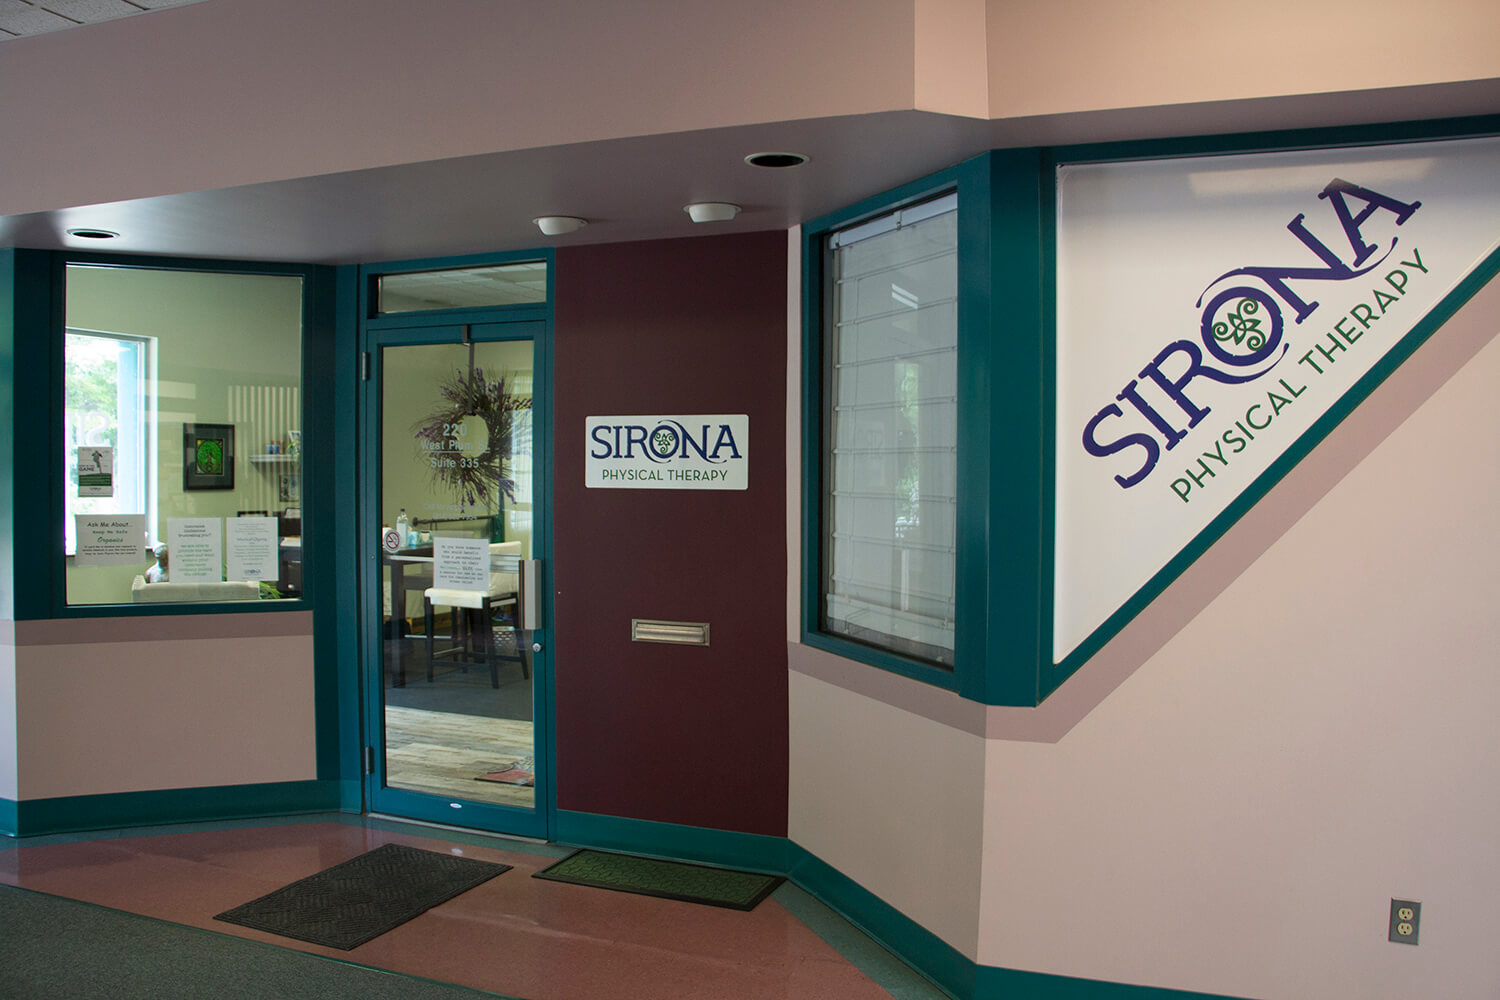 Sirona Physical Therapy